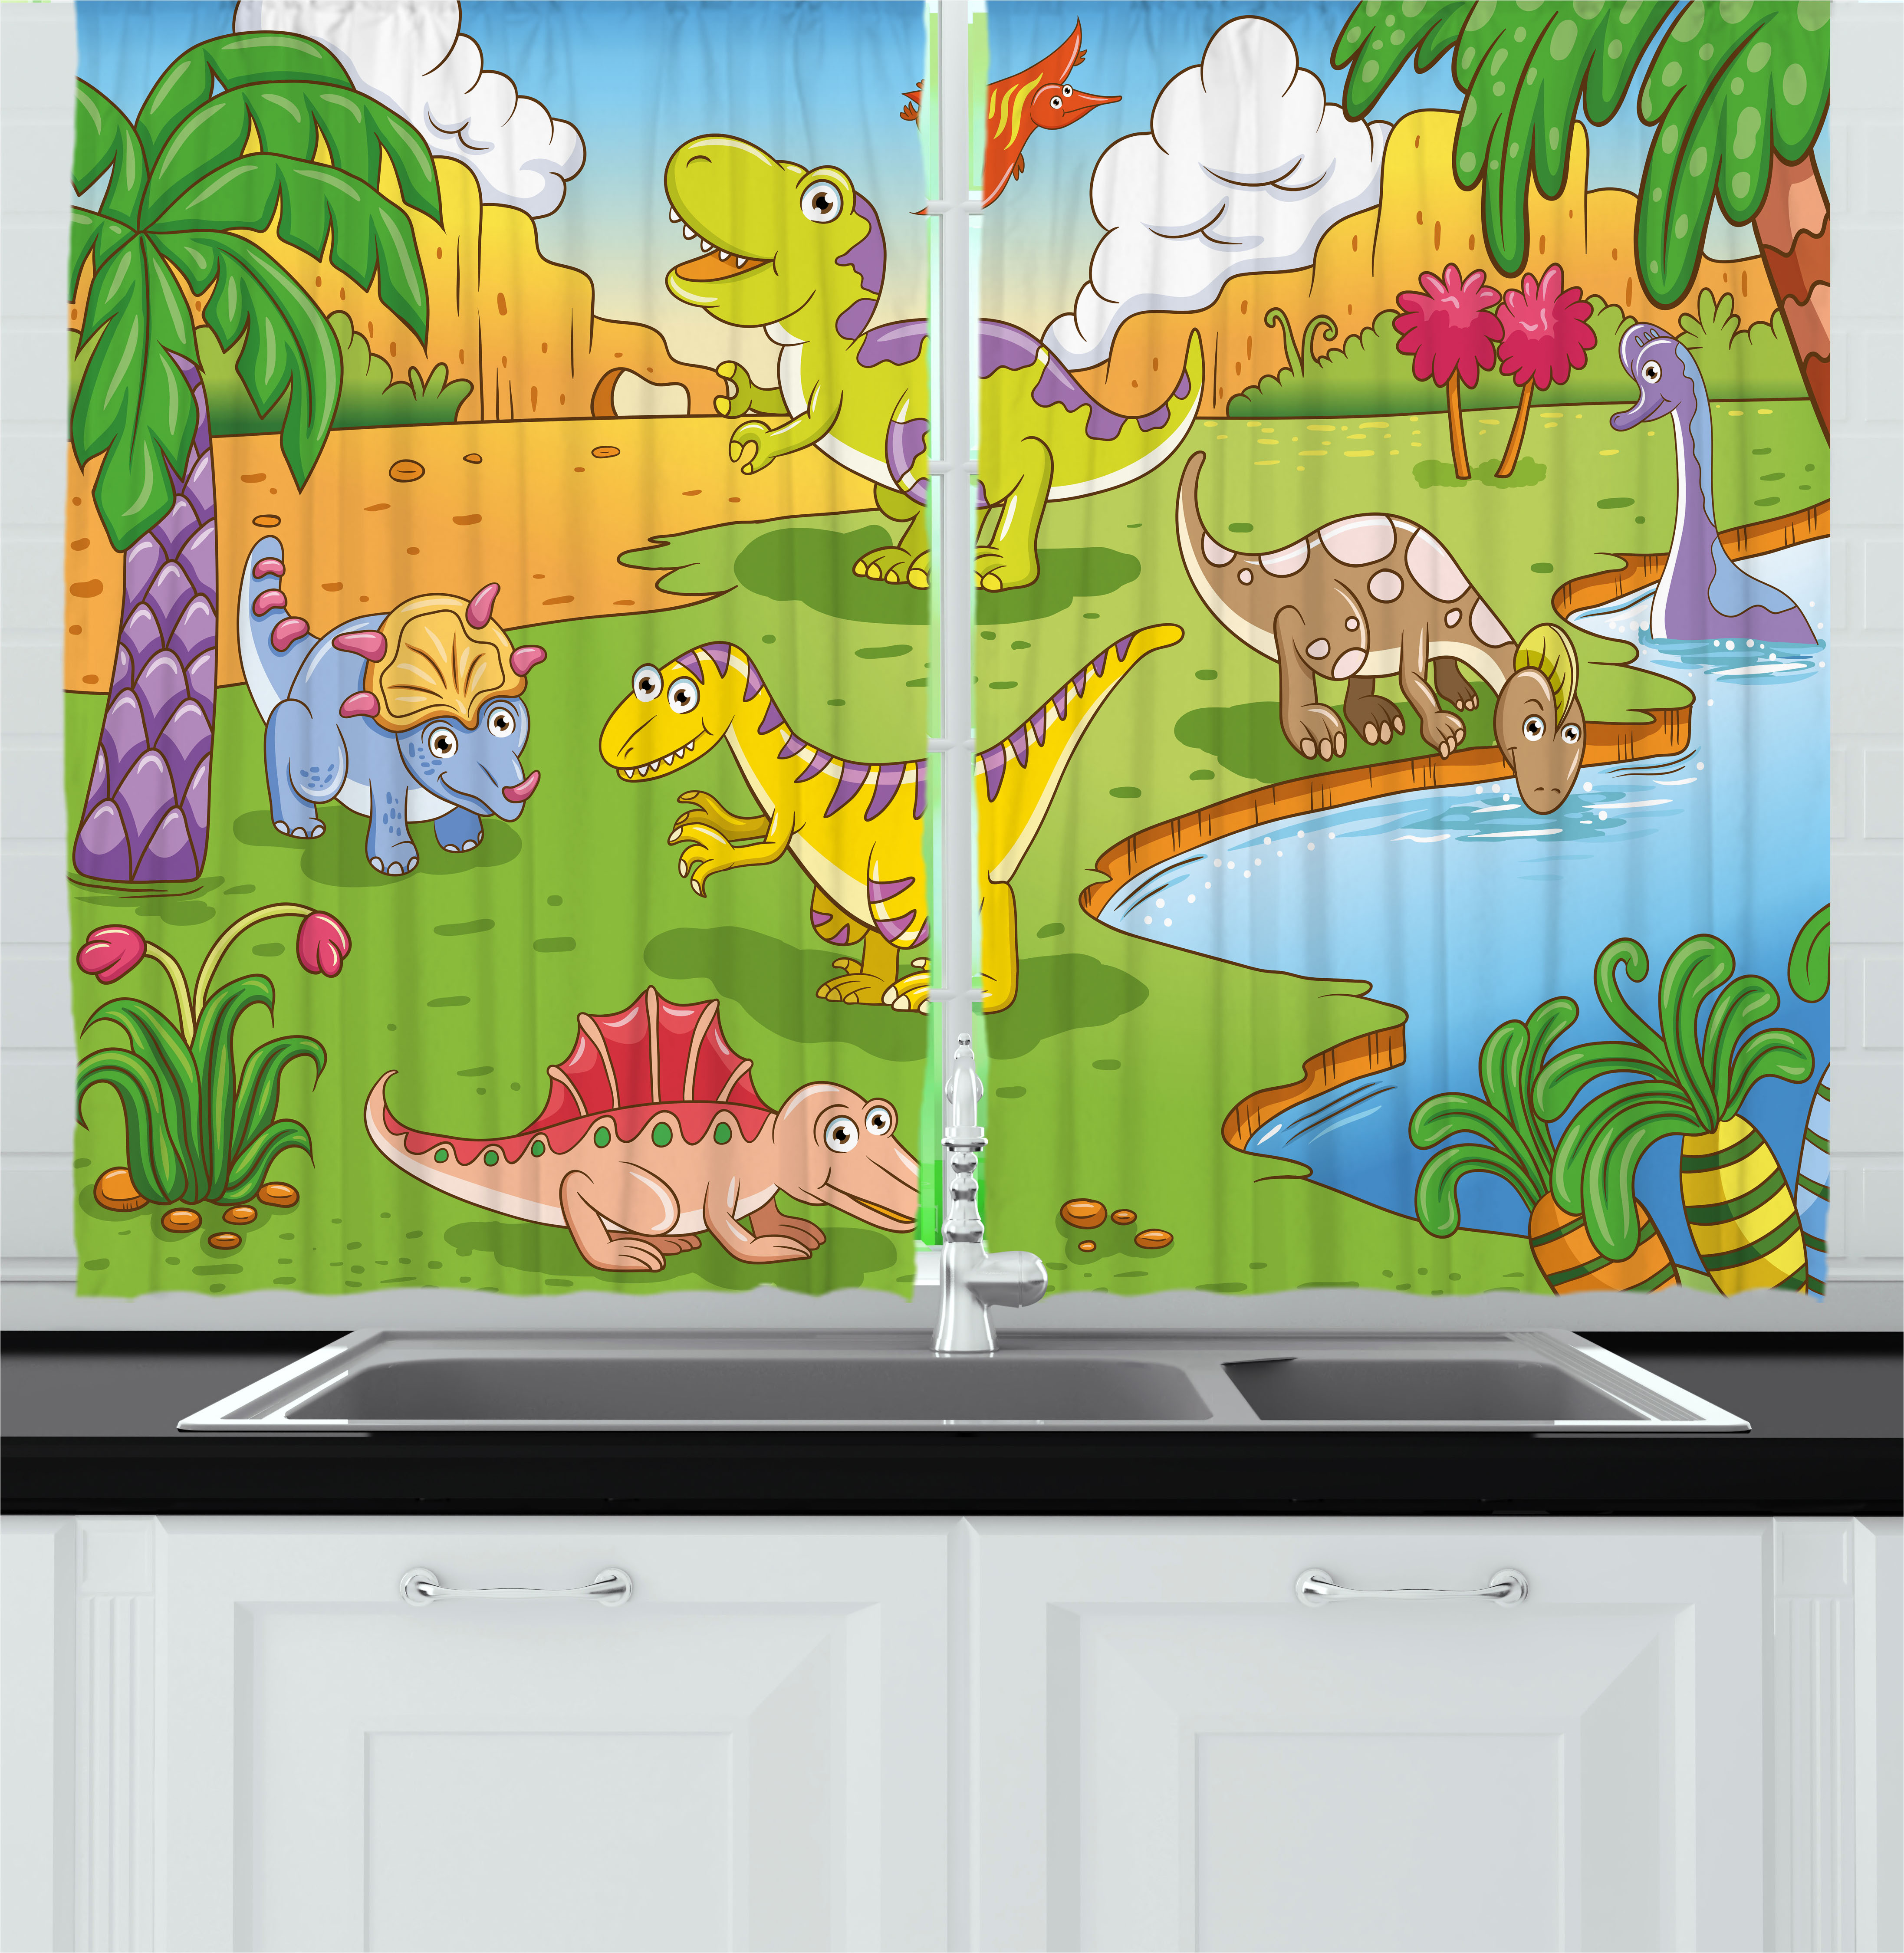 Kids Curtains 2 Panels Set, Cartoon Style Animals in Prehistoric Scene Meadow Trees and Flowers Print, Window Drapes for Living Room Bedroom, 55W X 39L Inches, Pale Coffee Lime Green, by Ambesonne